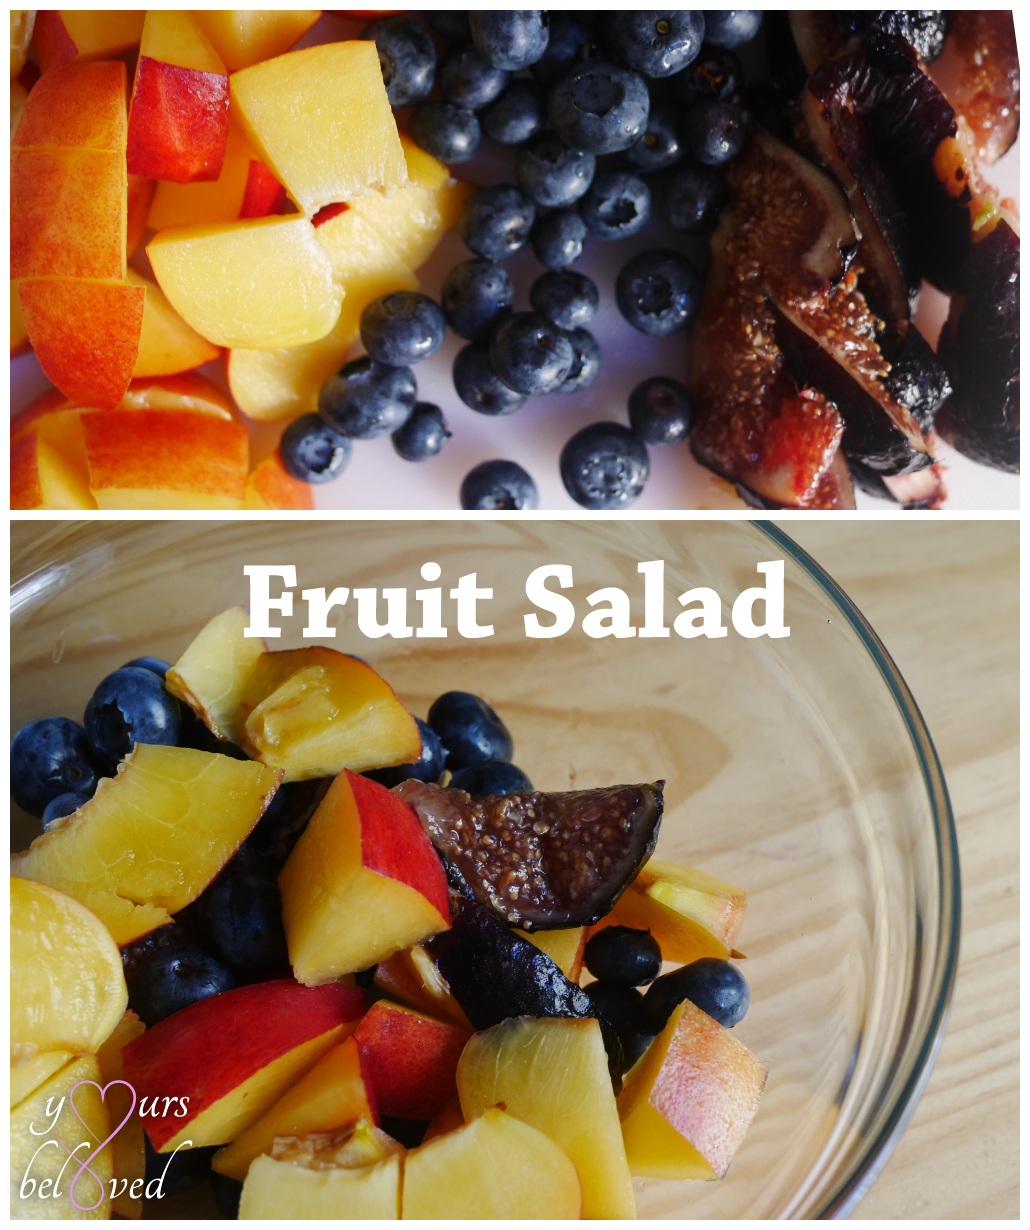 Day 27: Fruit Salad